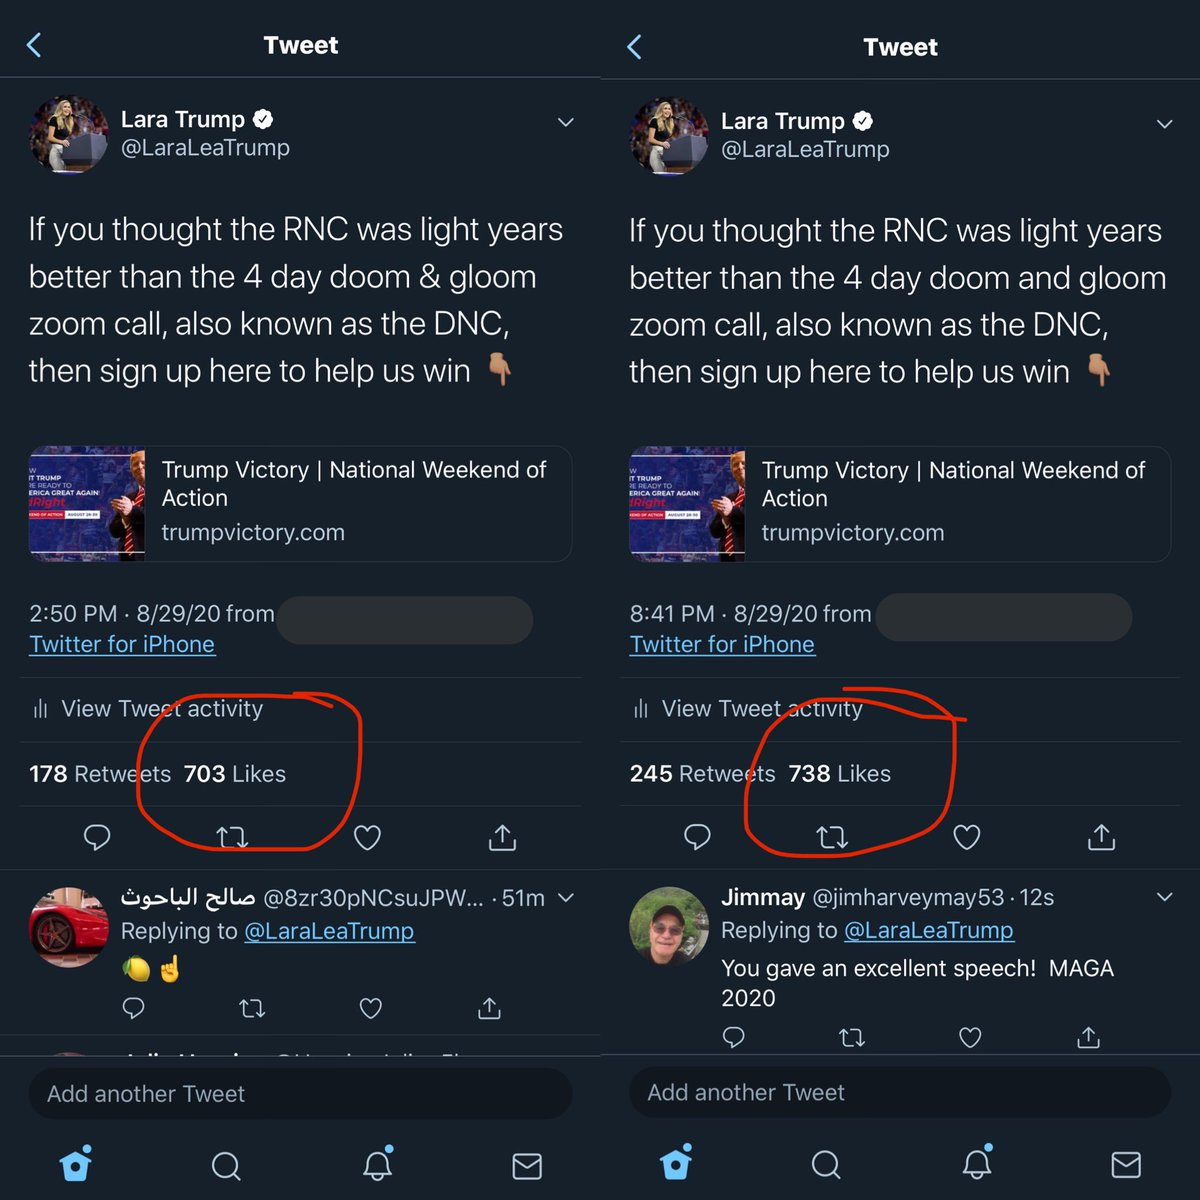 Want to know if they are silencing conservatives? The tweet on the left was up for 5 hrs, then I realized something was wrong. I deleted and reposted. 53 mins later, already more likes and retweets. They're worried about Nov 3rd. And they should be. #FourMoreYears 🇺🇸